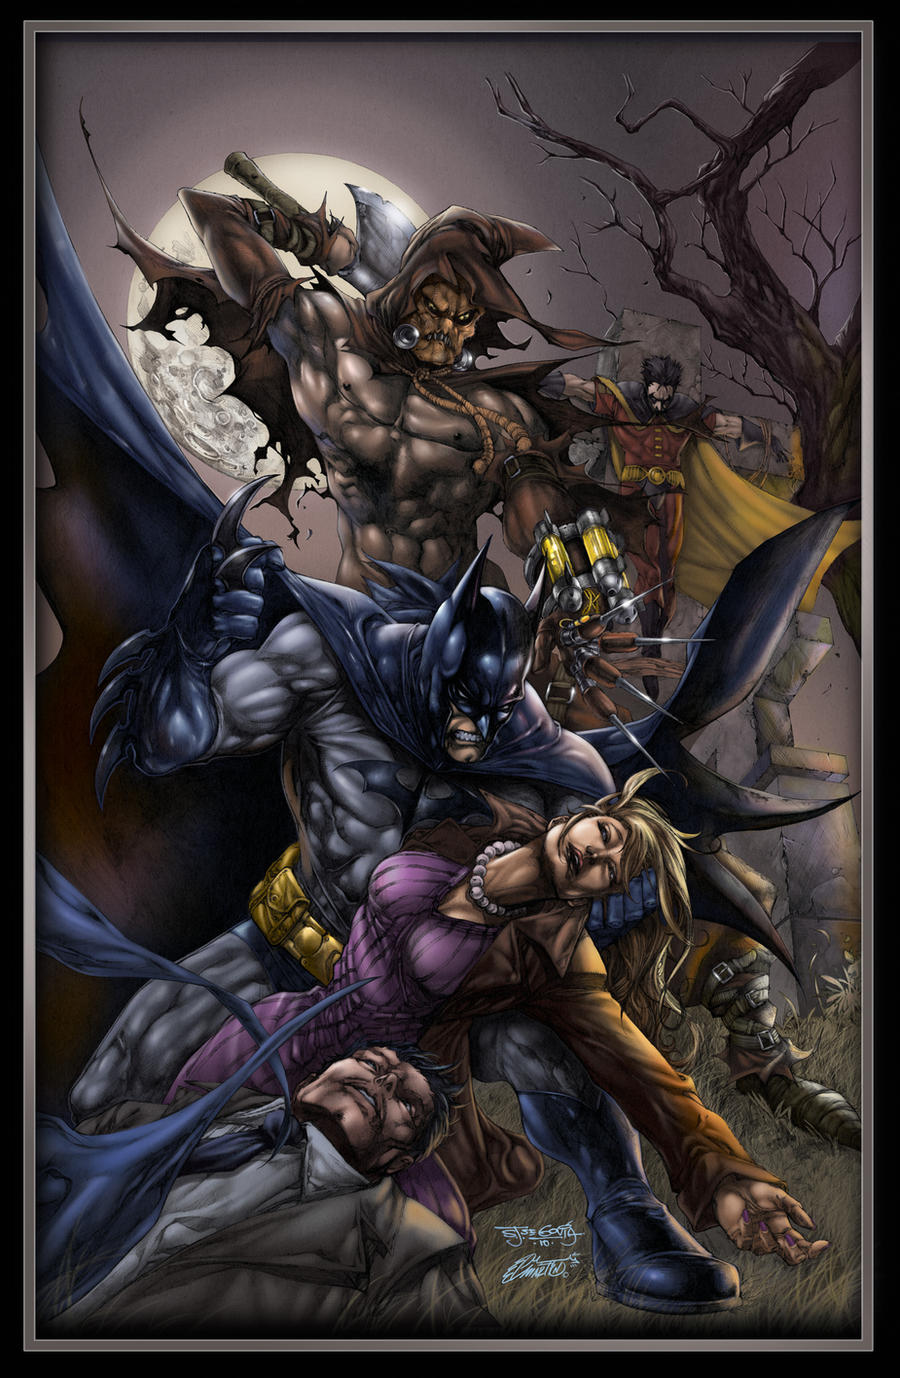 Batman Vs Scarecrow Colors By Aladecuervo On Deviantart